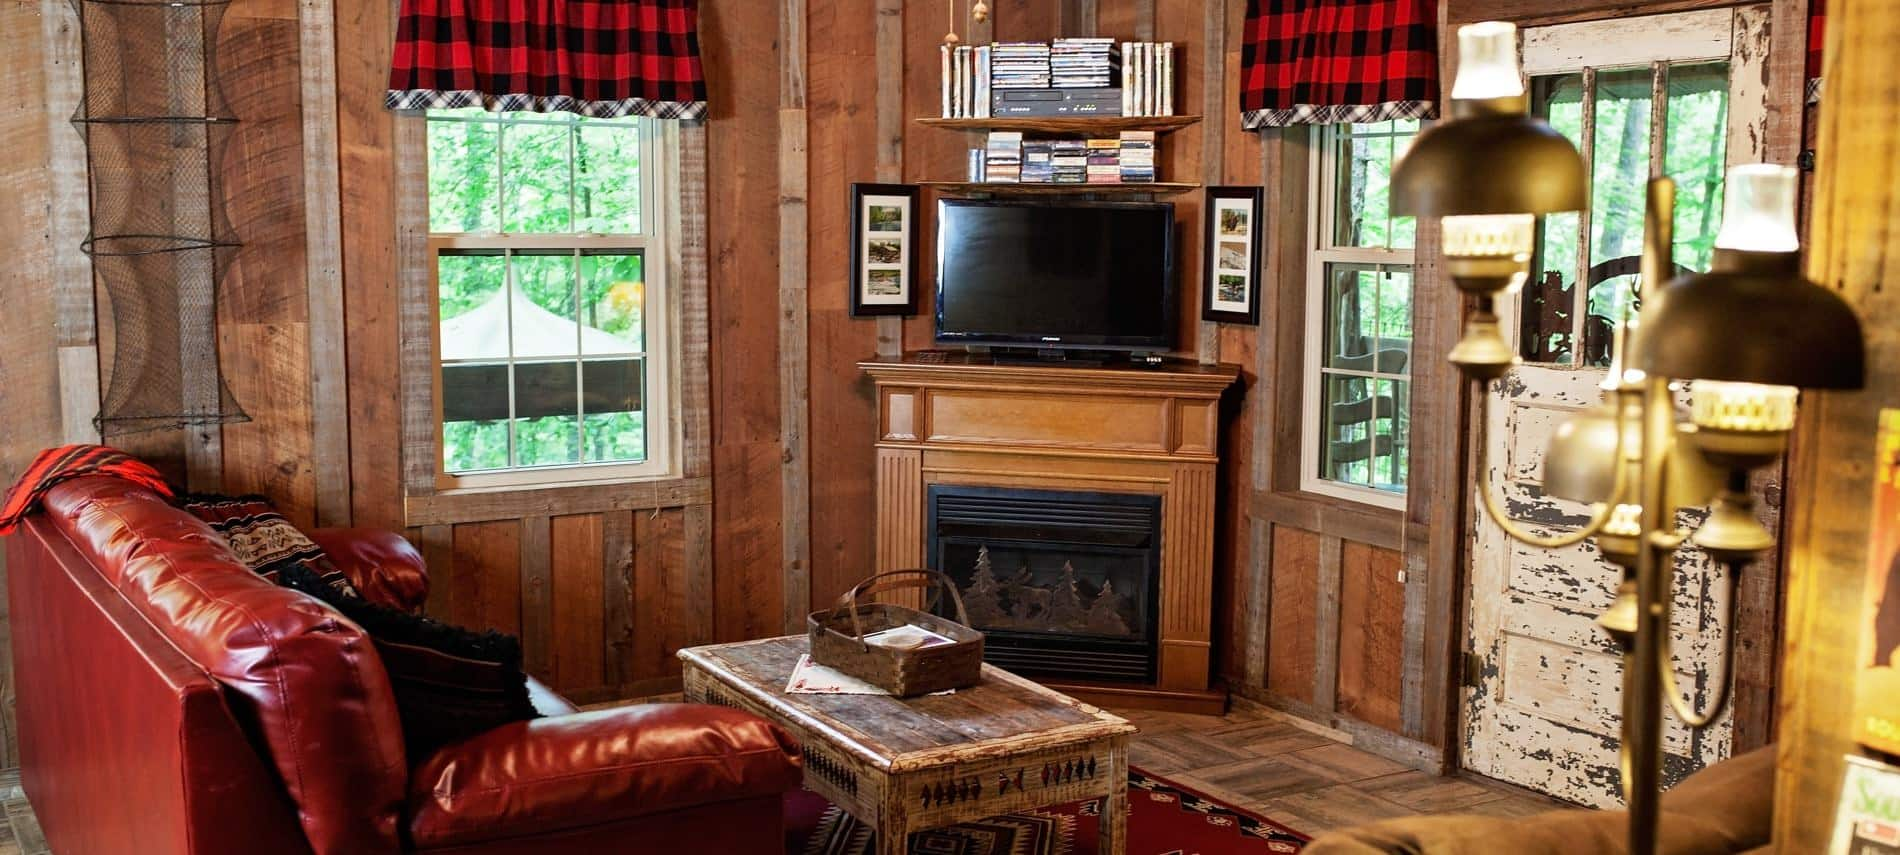 Wood cabin interior with corner fireplace, TV, several windows, and leather sofa with coffee table